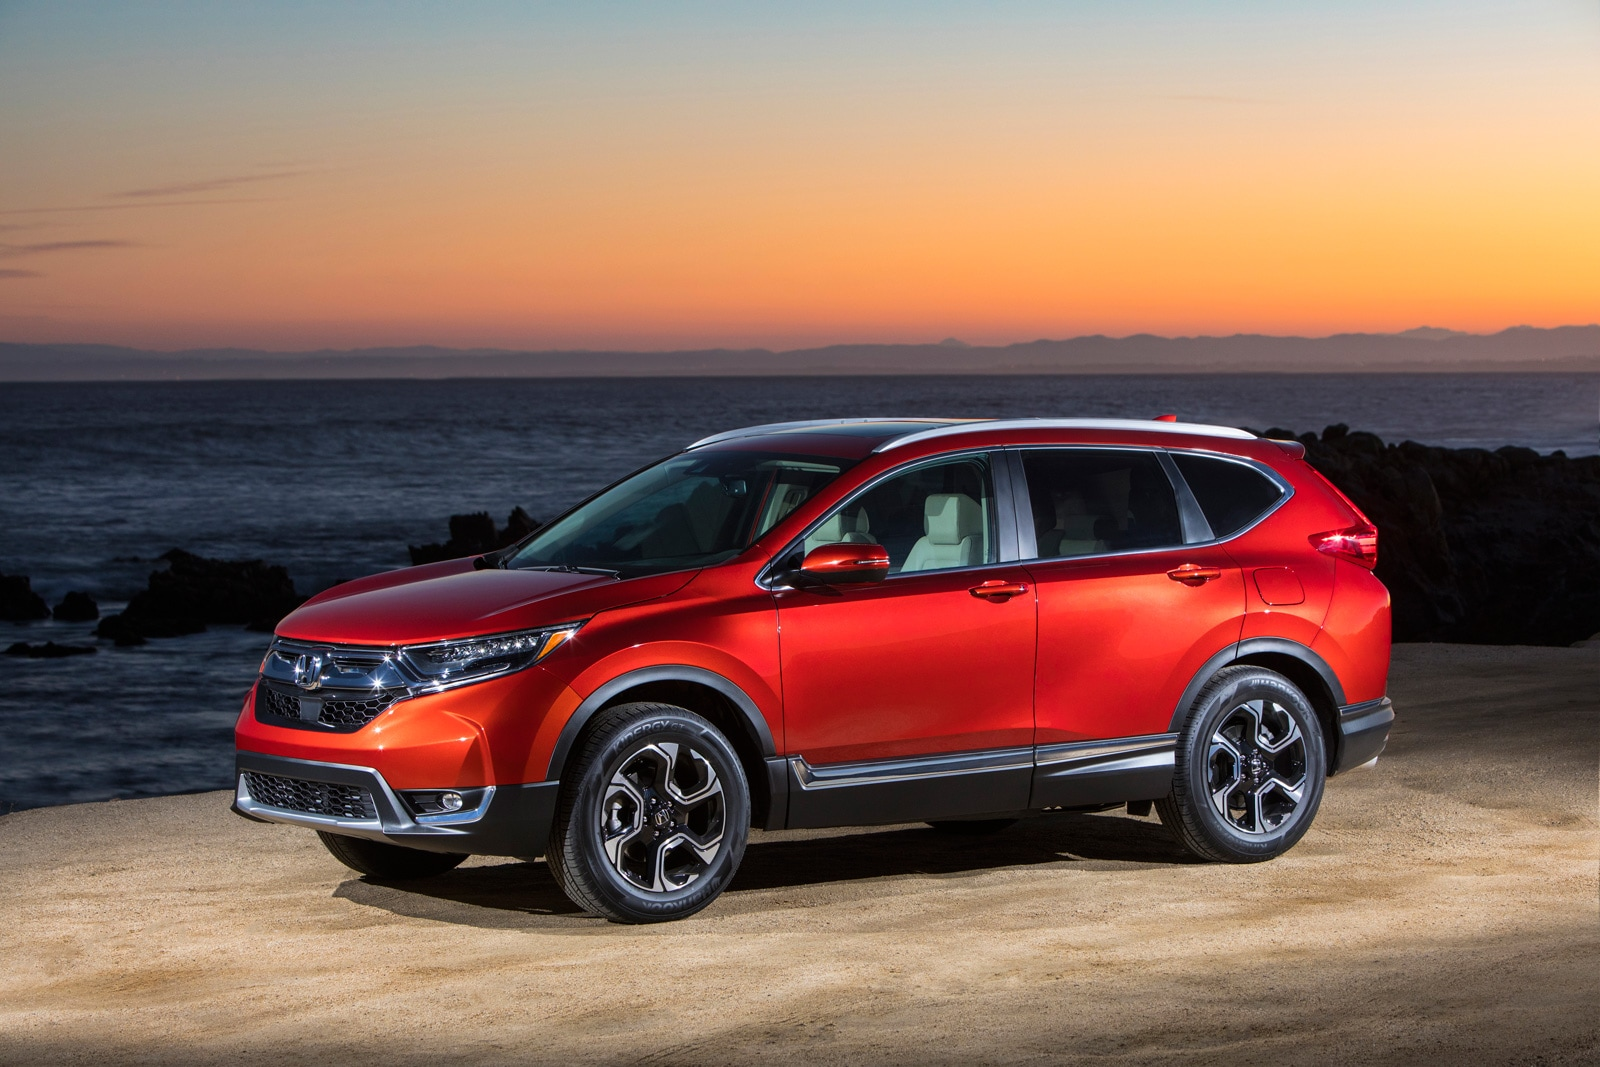 The 2018 Honda CR V Available To The New Braunfels Customers Served By  Gillman Honda San Antonio, Is Japanese Designed, Assembled In Indiana, OH,  ...